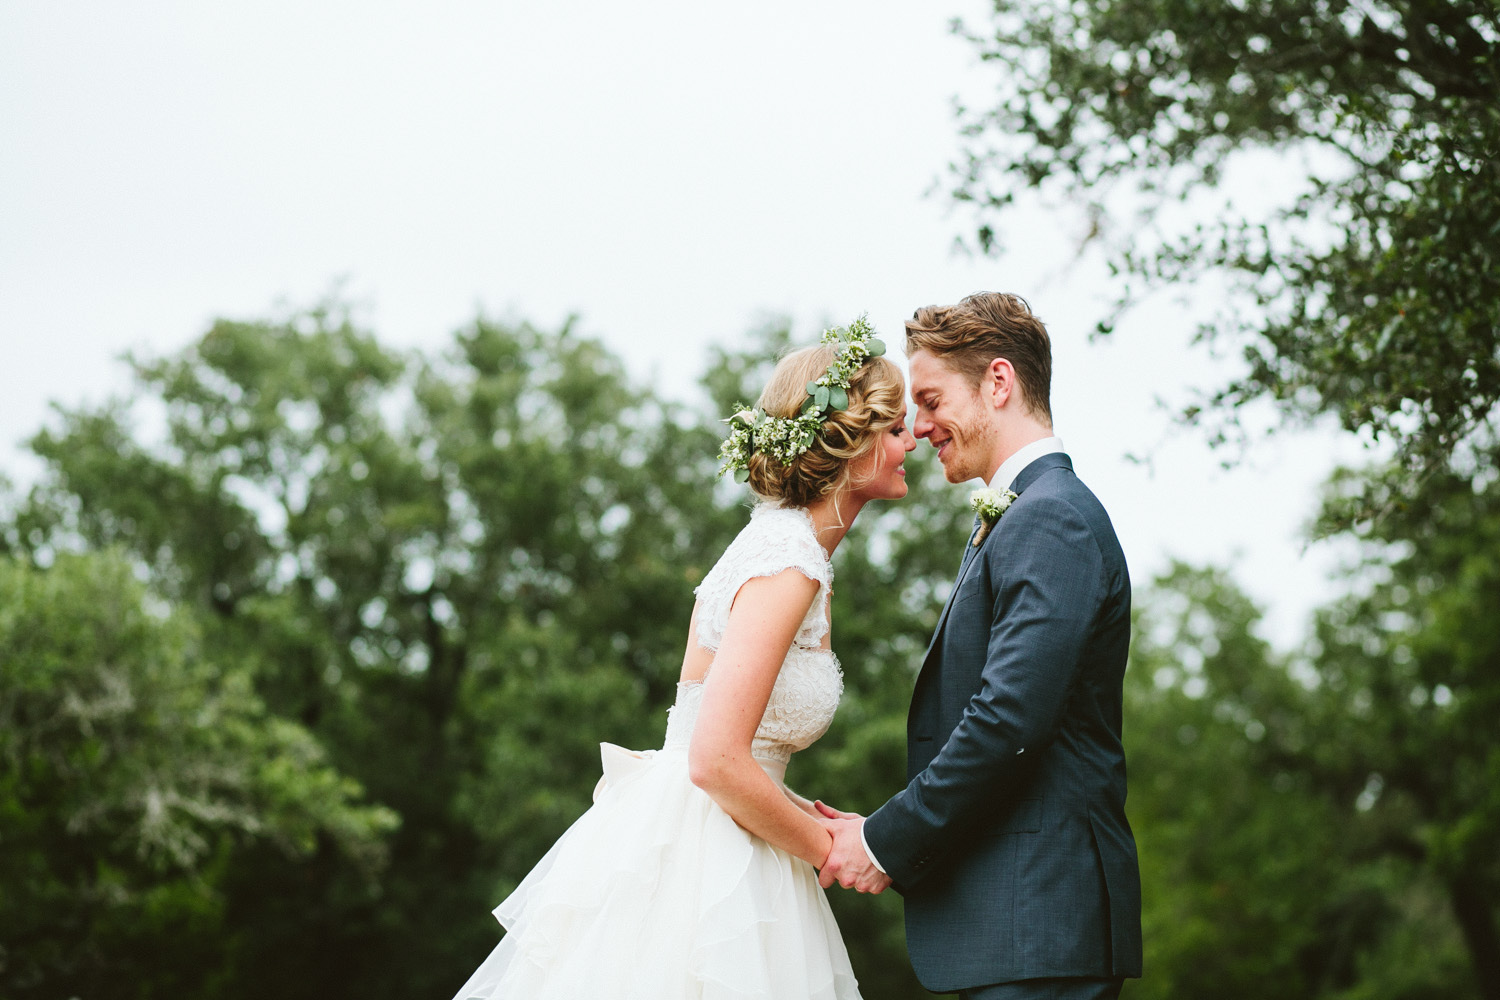 Bride with Flower Crown and Groom | Lisa Woods Photography